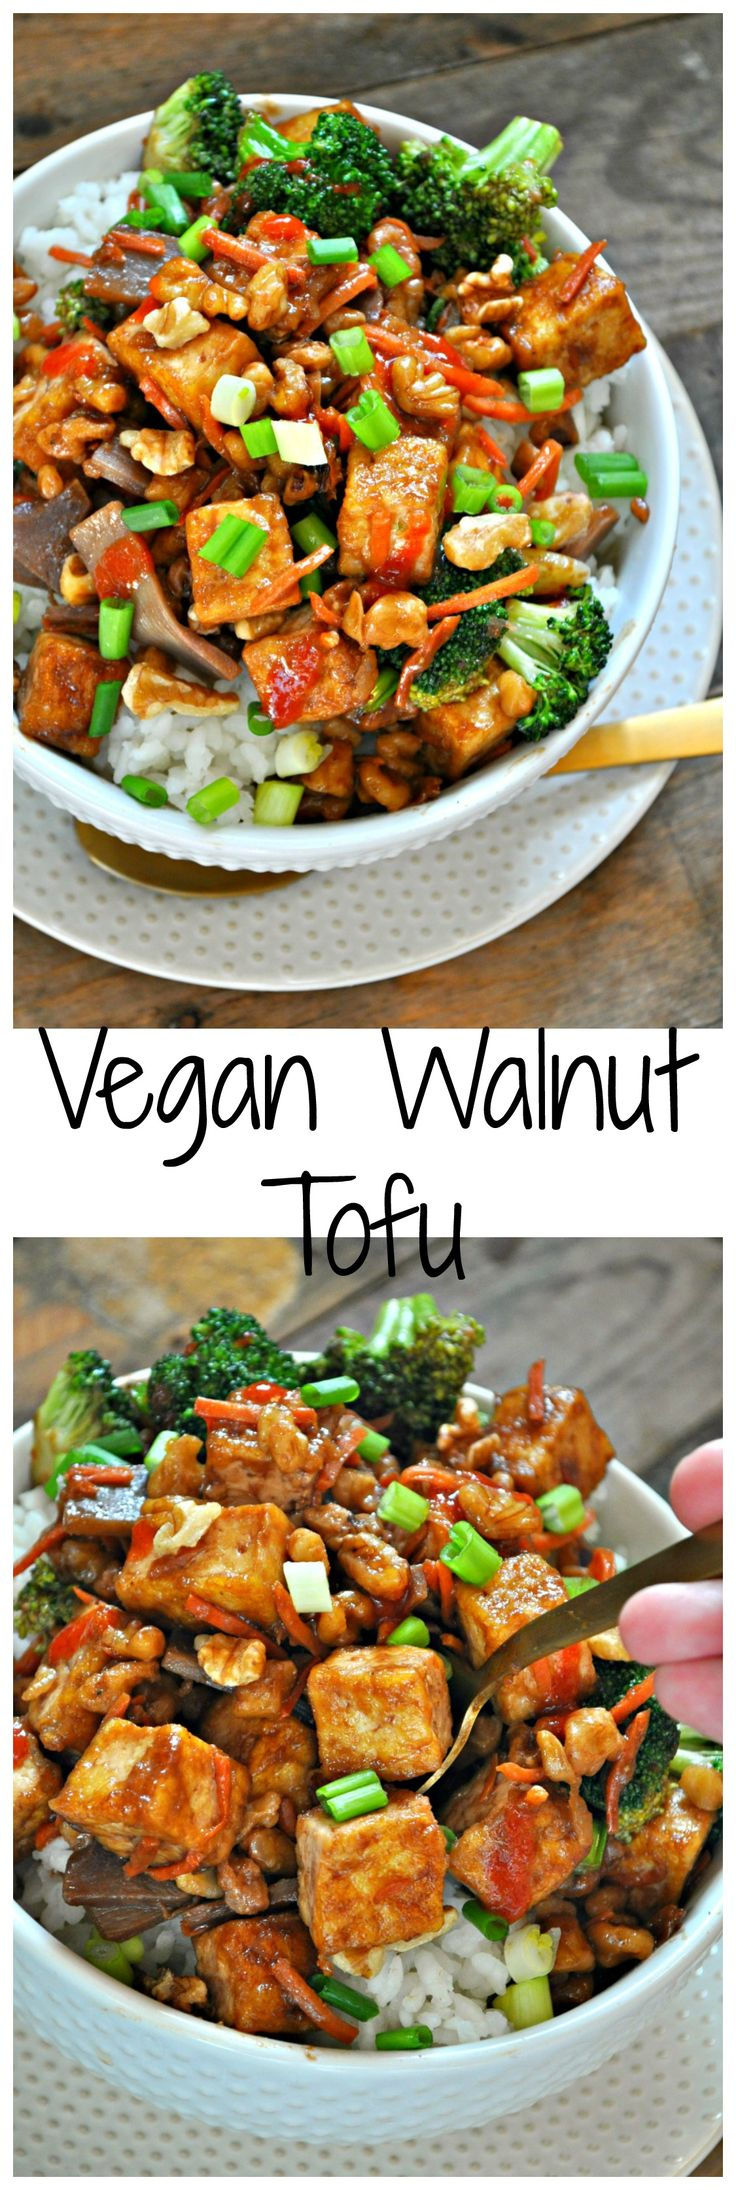 This walnut tofu is better than takeout! Crispy tofu, veggies and walnuts tossed in a delicious Asian sauce! Super quick and delicious!